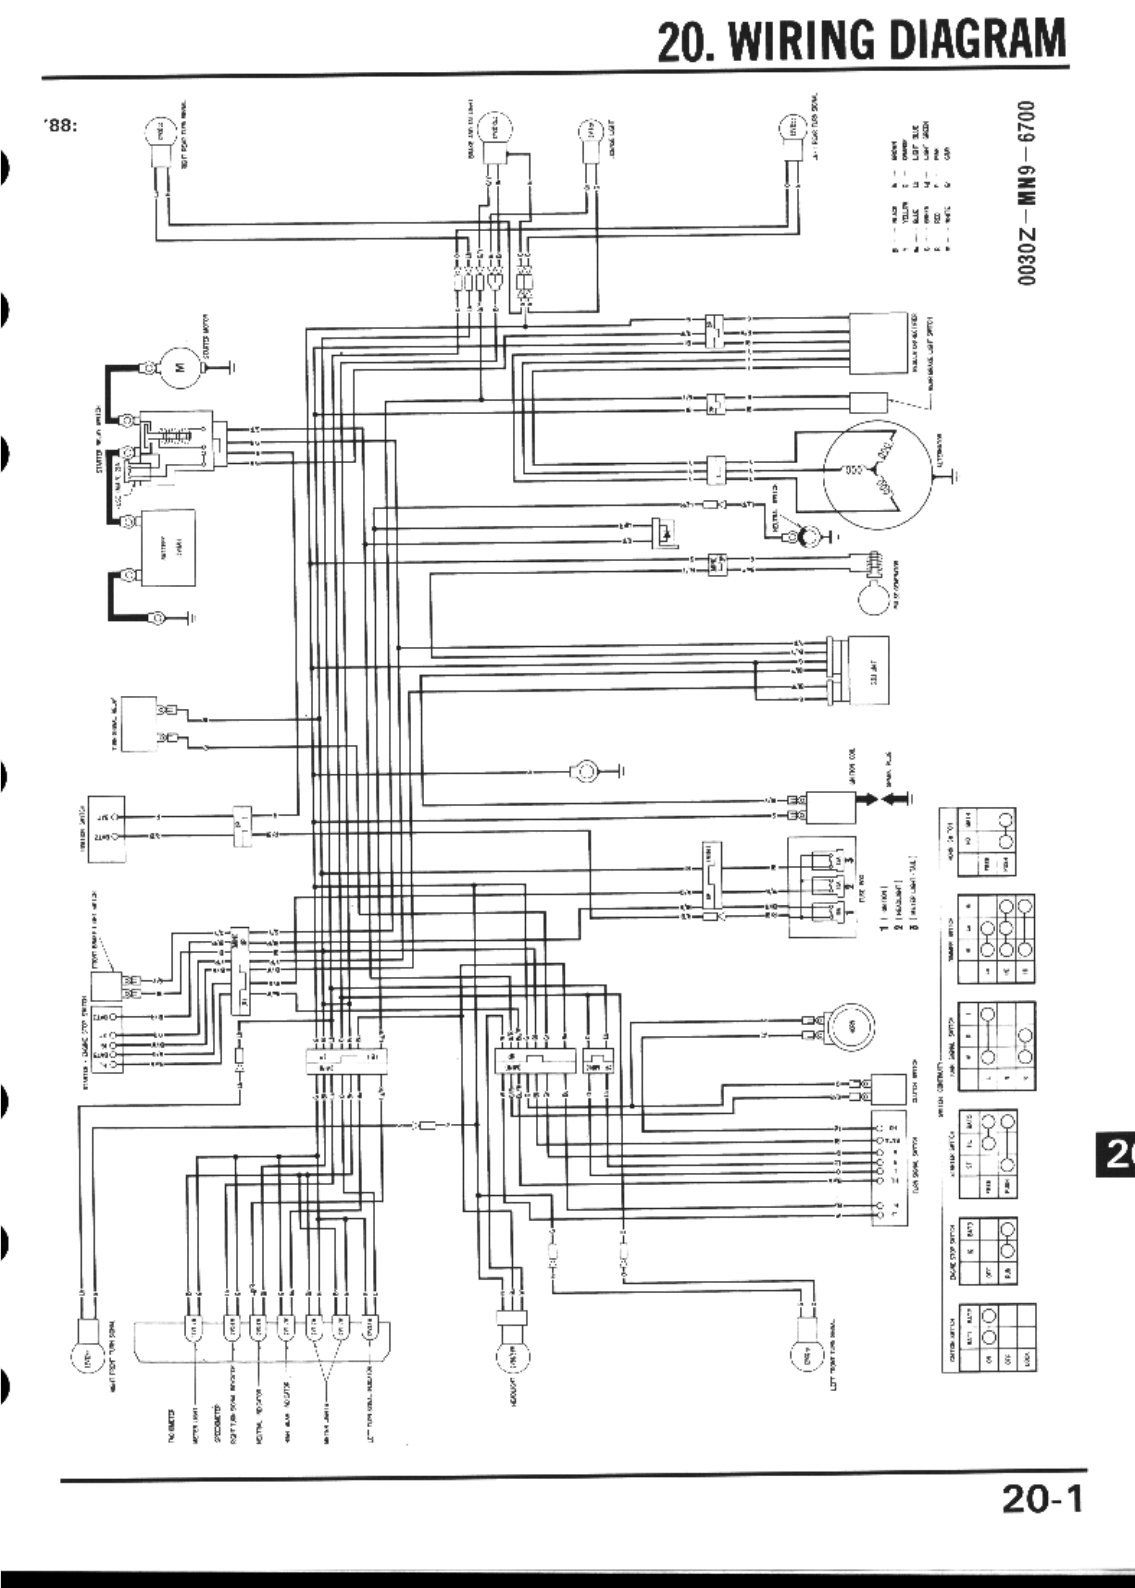 Nx650 Wiring Diagram - 2001 Chevy Tahoe Fuel Pump Wiring Diagram for Wiring  Diagram SchematicsWiring Diagram Schematics